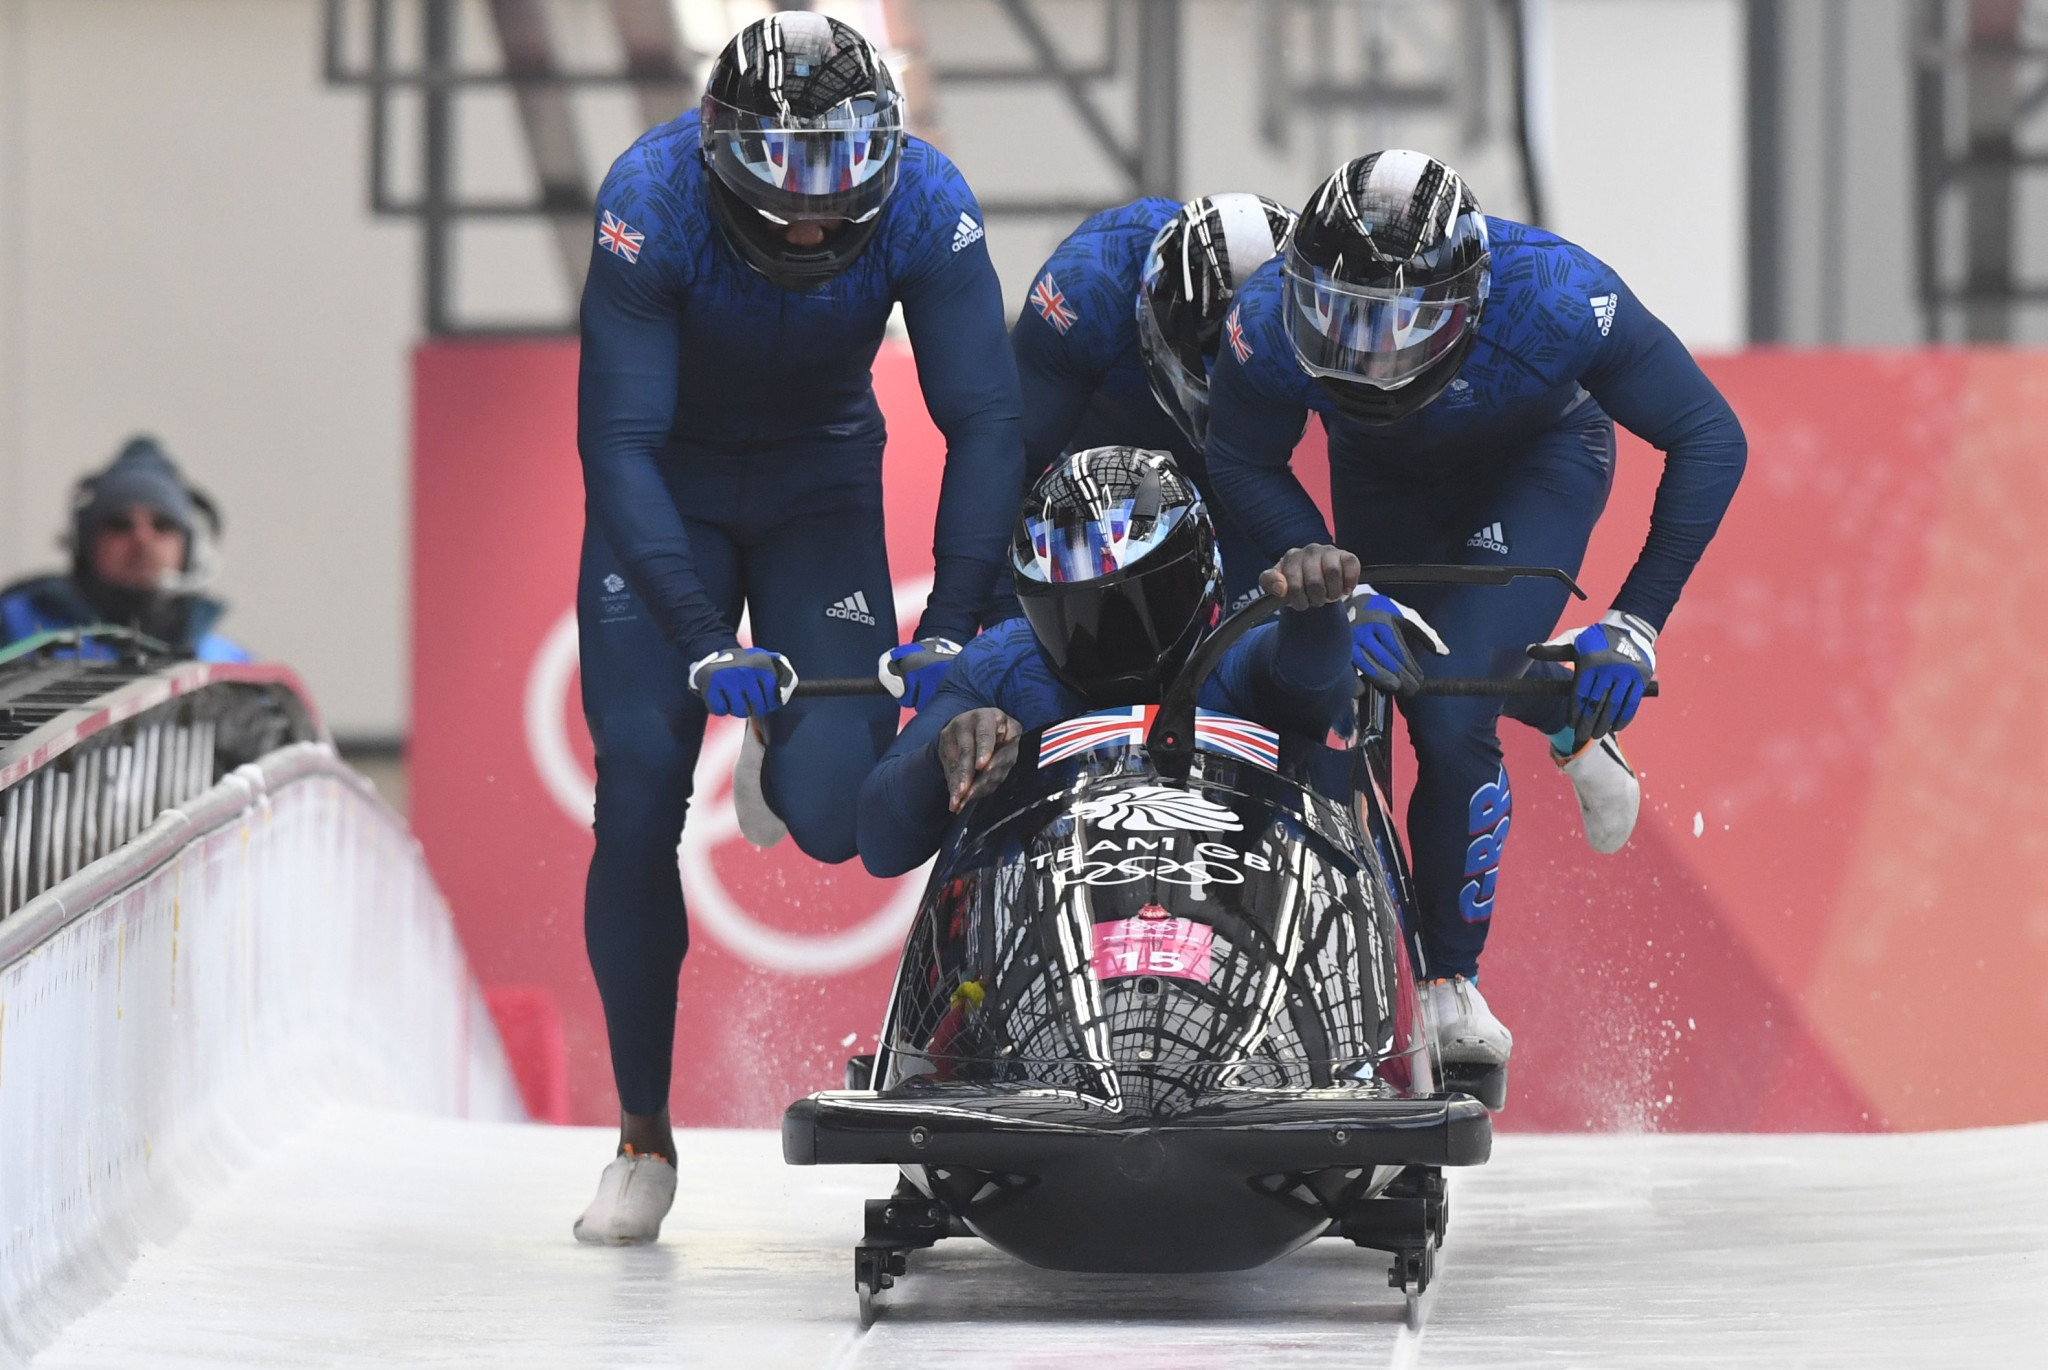 Harwin signs on as sponsor of British bobsleigh team